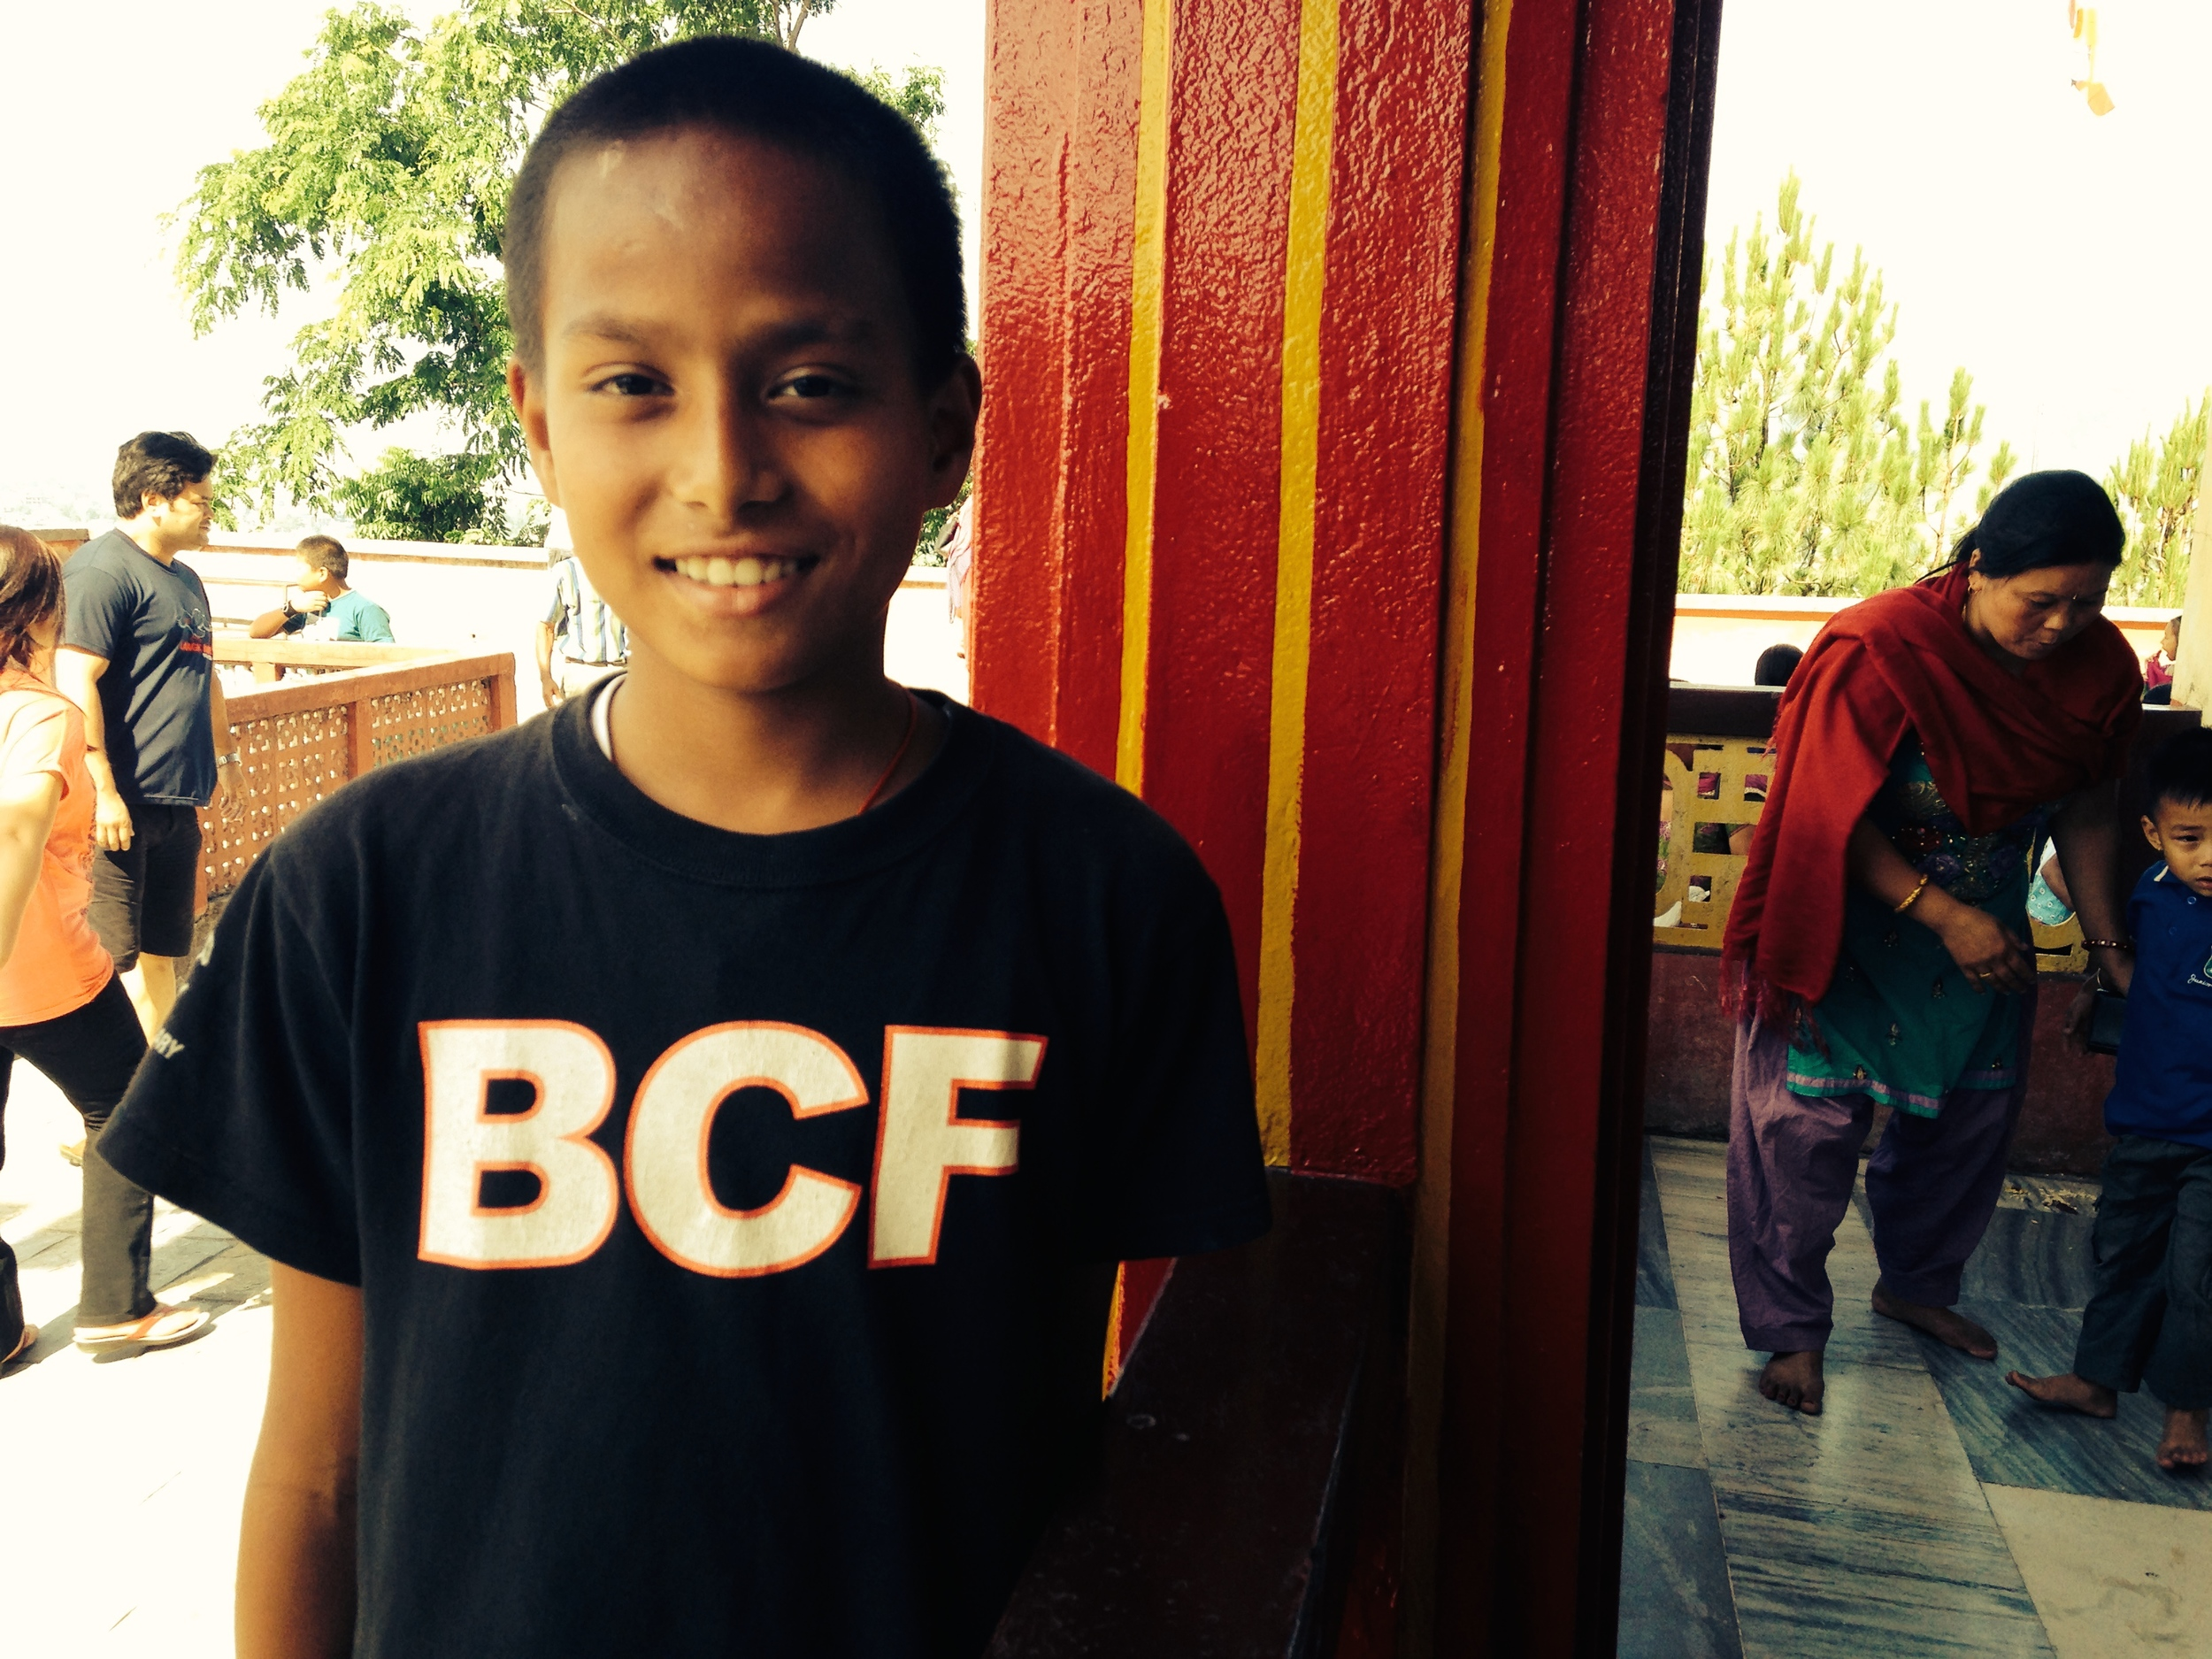 A smiling student proudly sports his  new t-shirt  from a football club in Colorado, U.S.A.